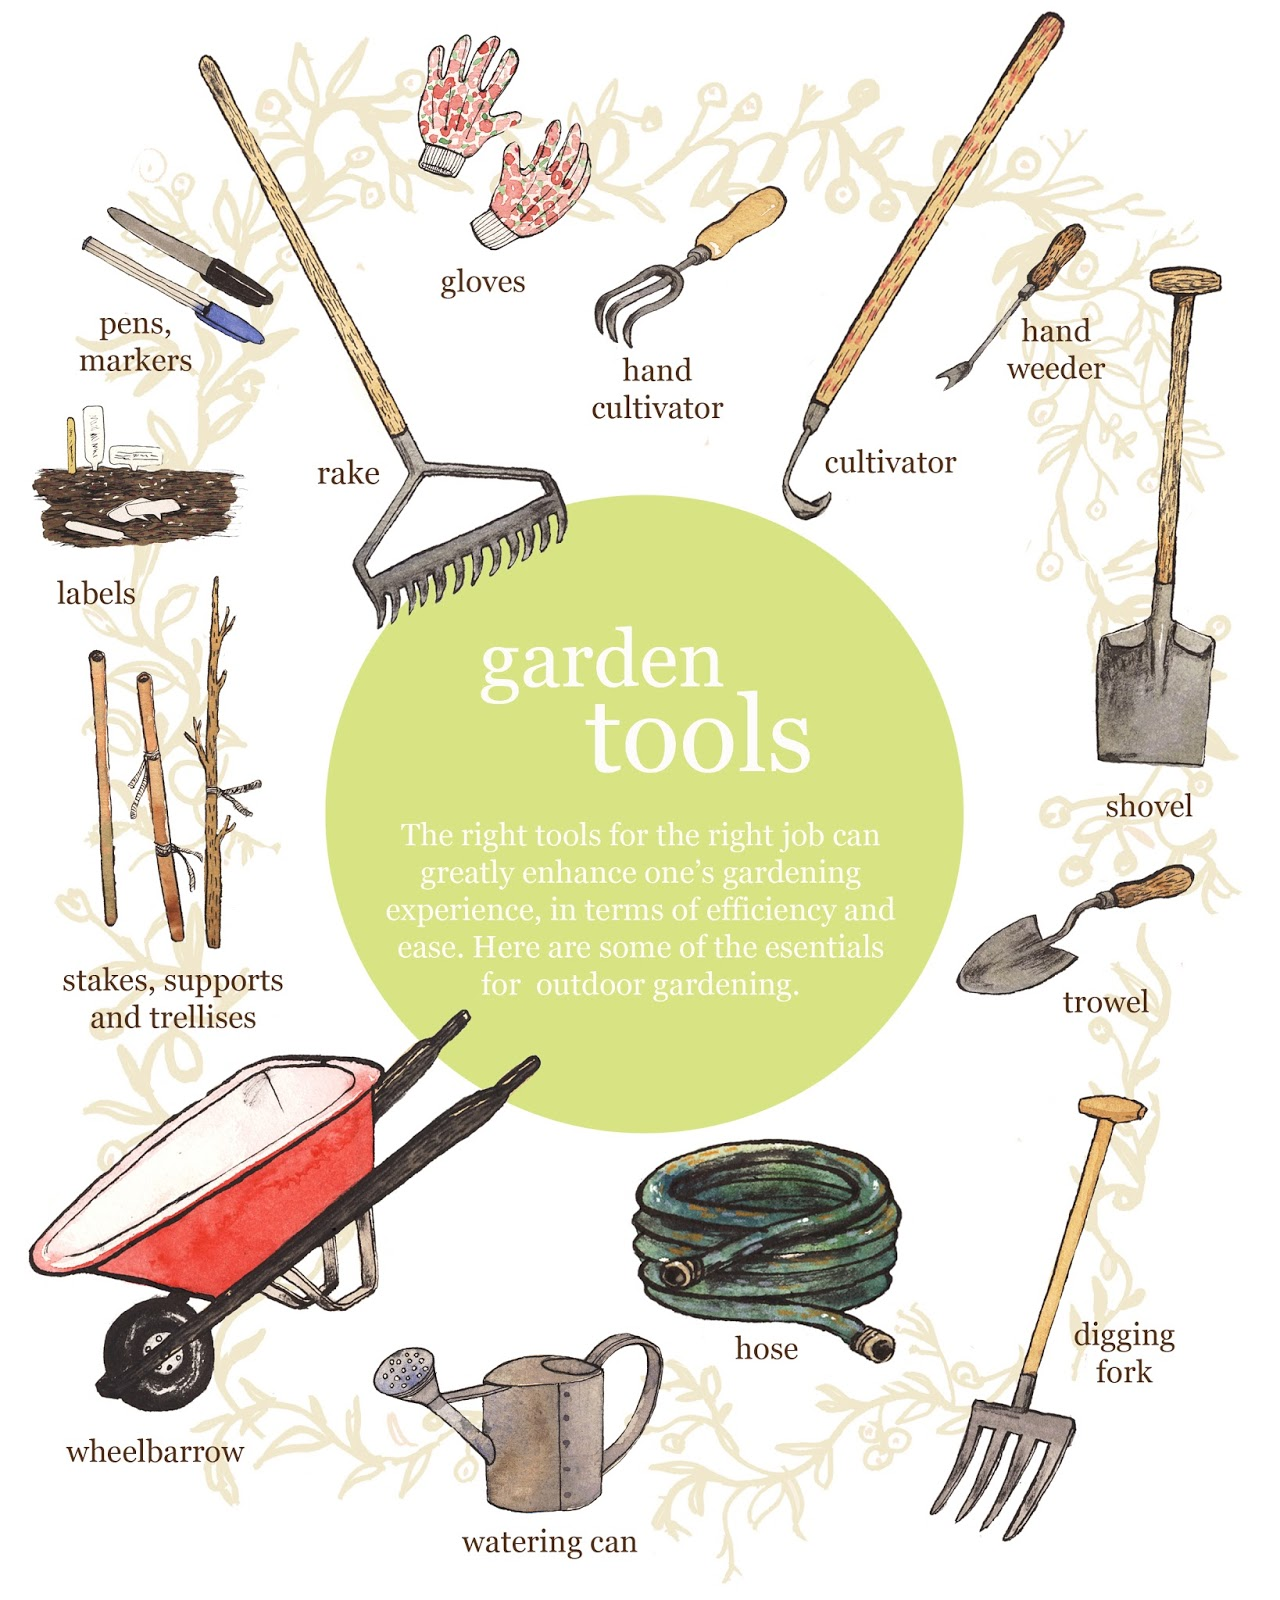 Robin Clugston: Gardening Tools and Compost Advice